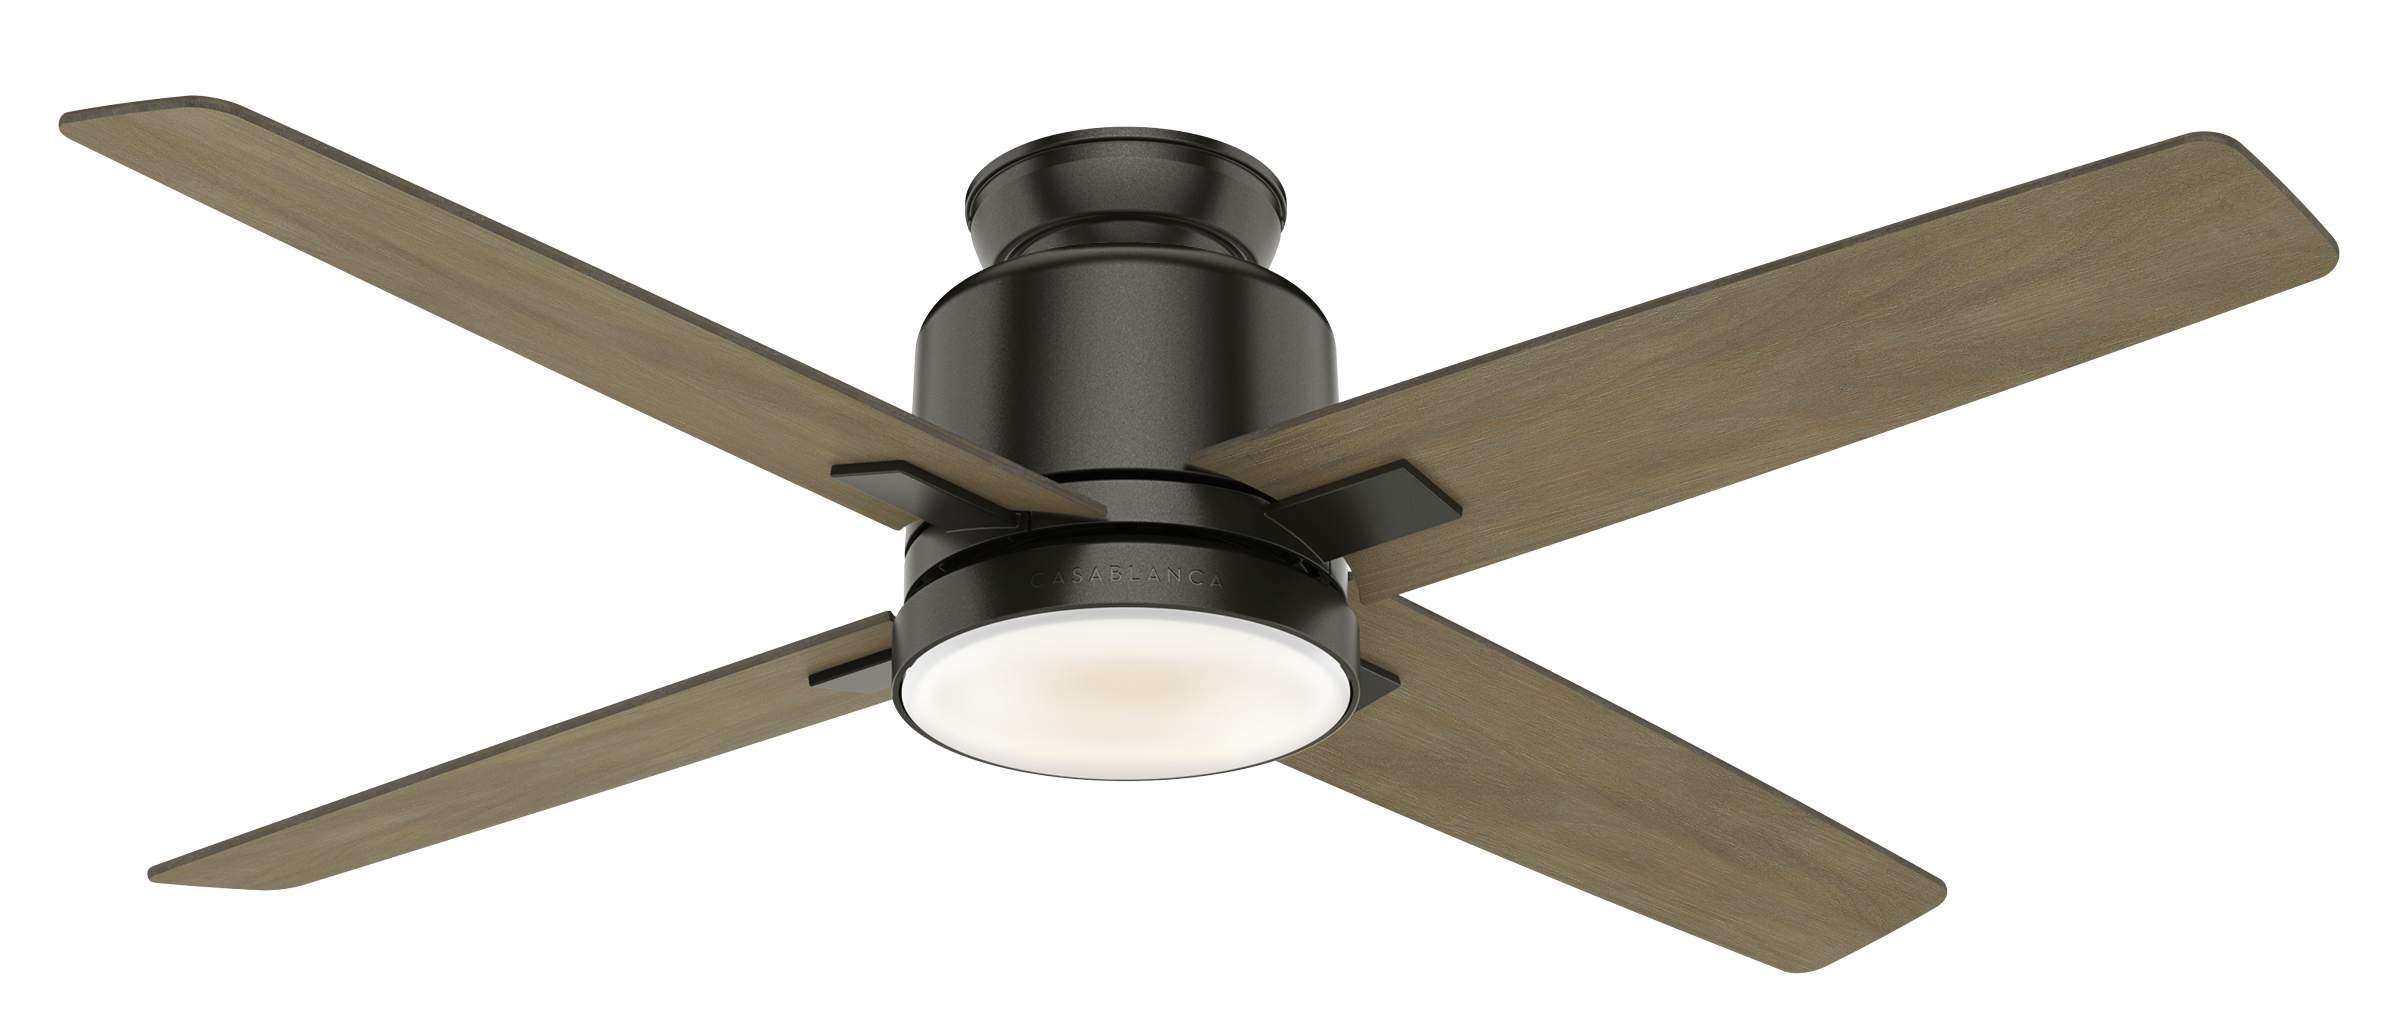 Casablanca 59341 Axial Ceiling Fan in Noble Bronze - Flush